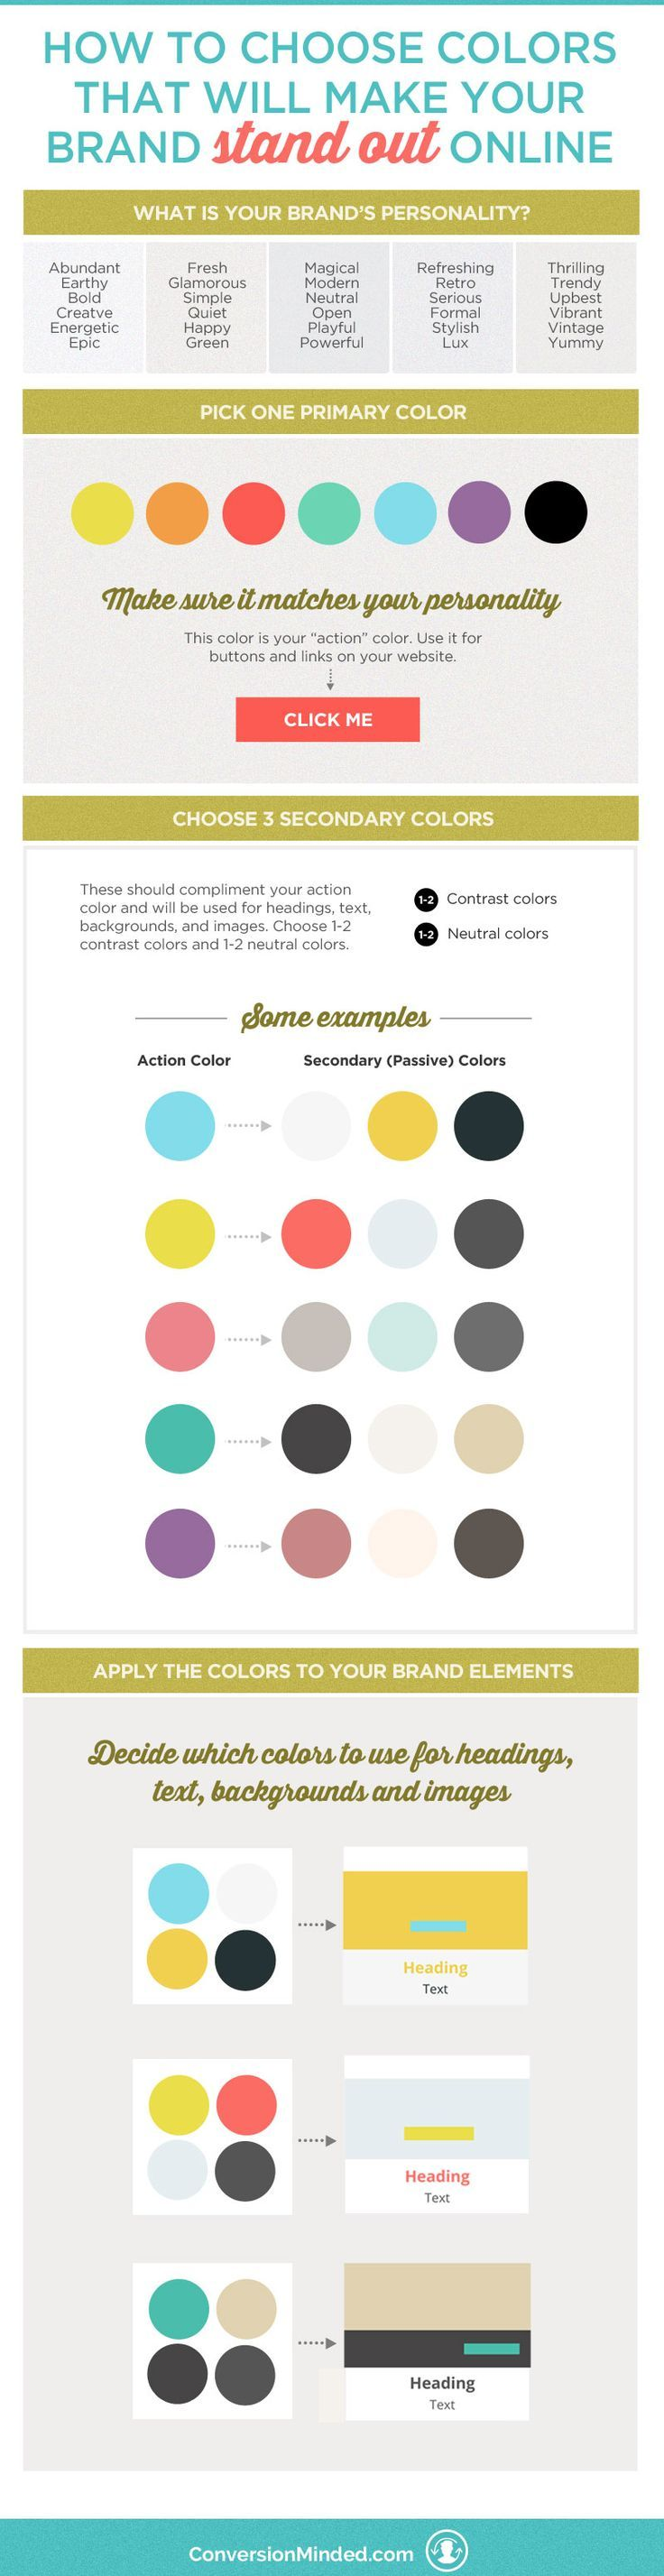 How to Choose Colors That Will Make Your Brand Stand Out | Do you love creating mood boards and collecting colors, but then find yourself a bit stumped with how to apply them to your brand? This post will help! It includes tips for entrepreneurs and biz owners to help you select and apply your brand colors with purpose and intention. Click through to see all the color tips!!